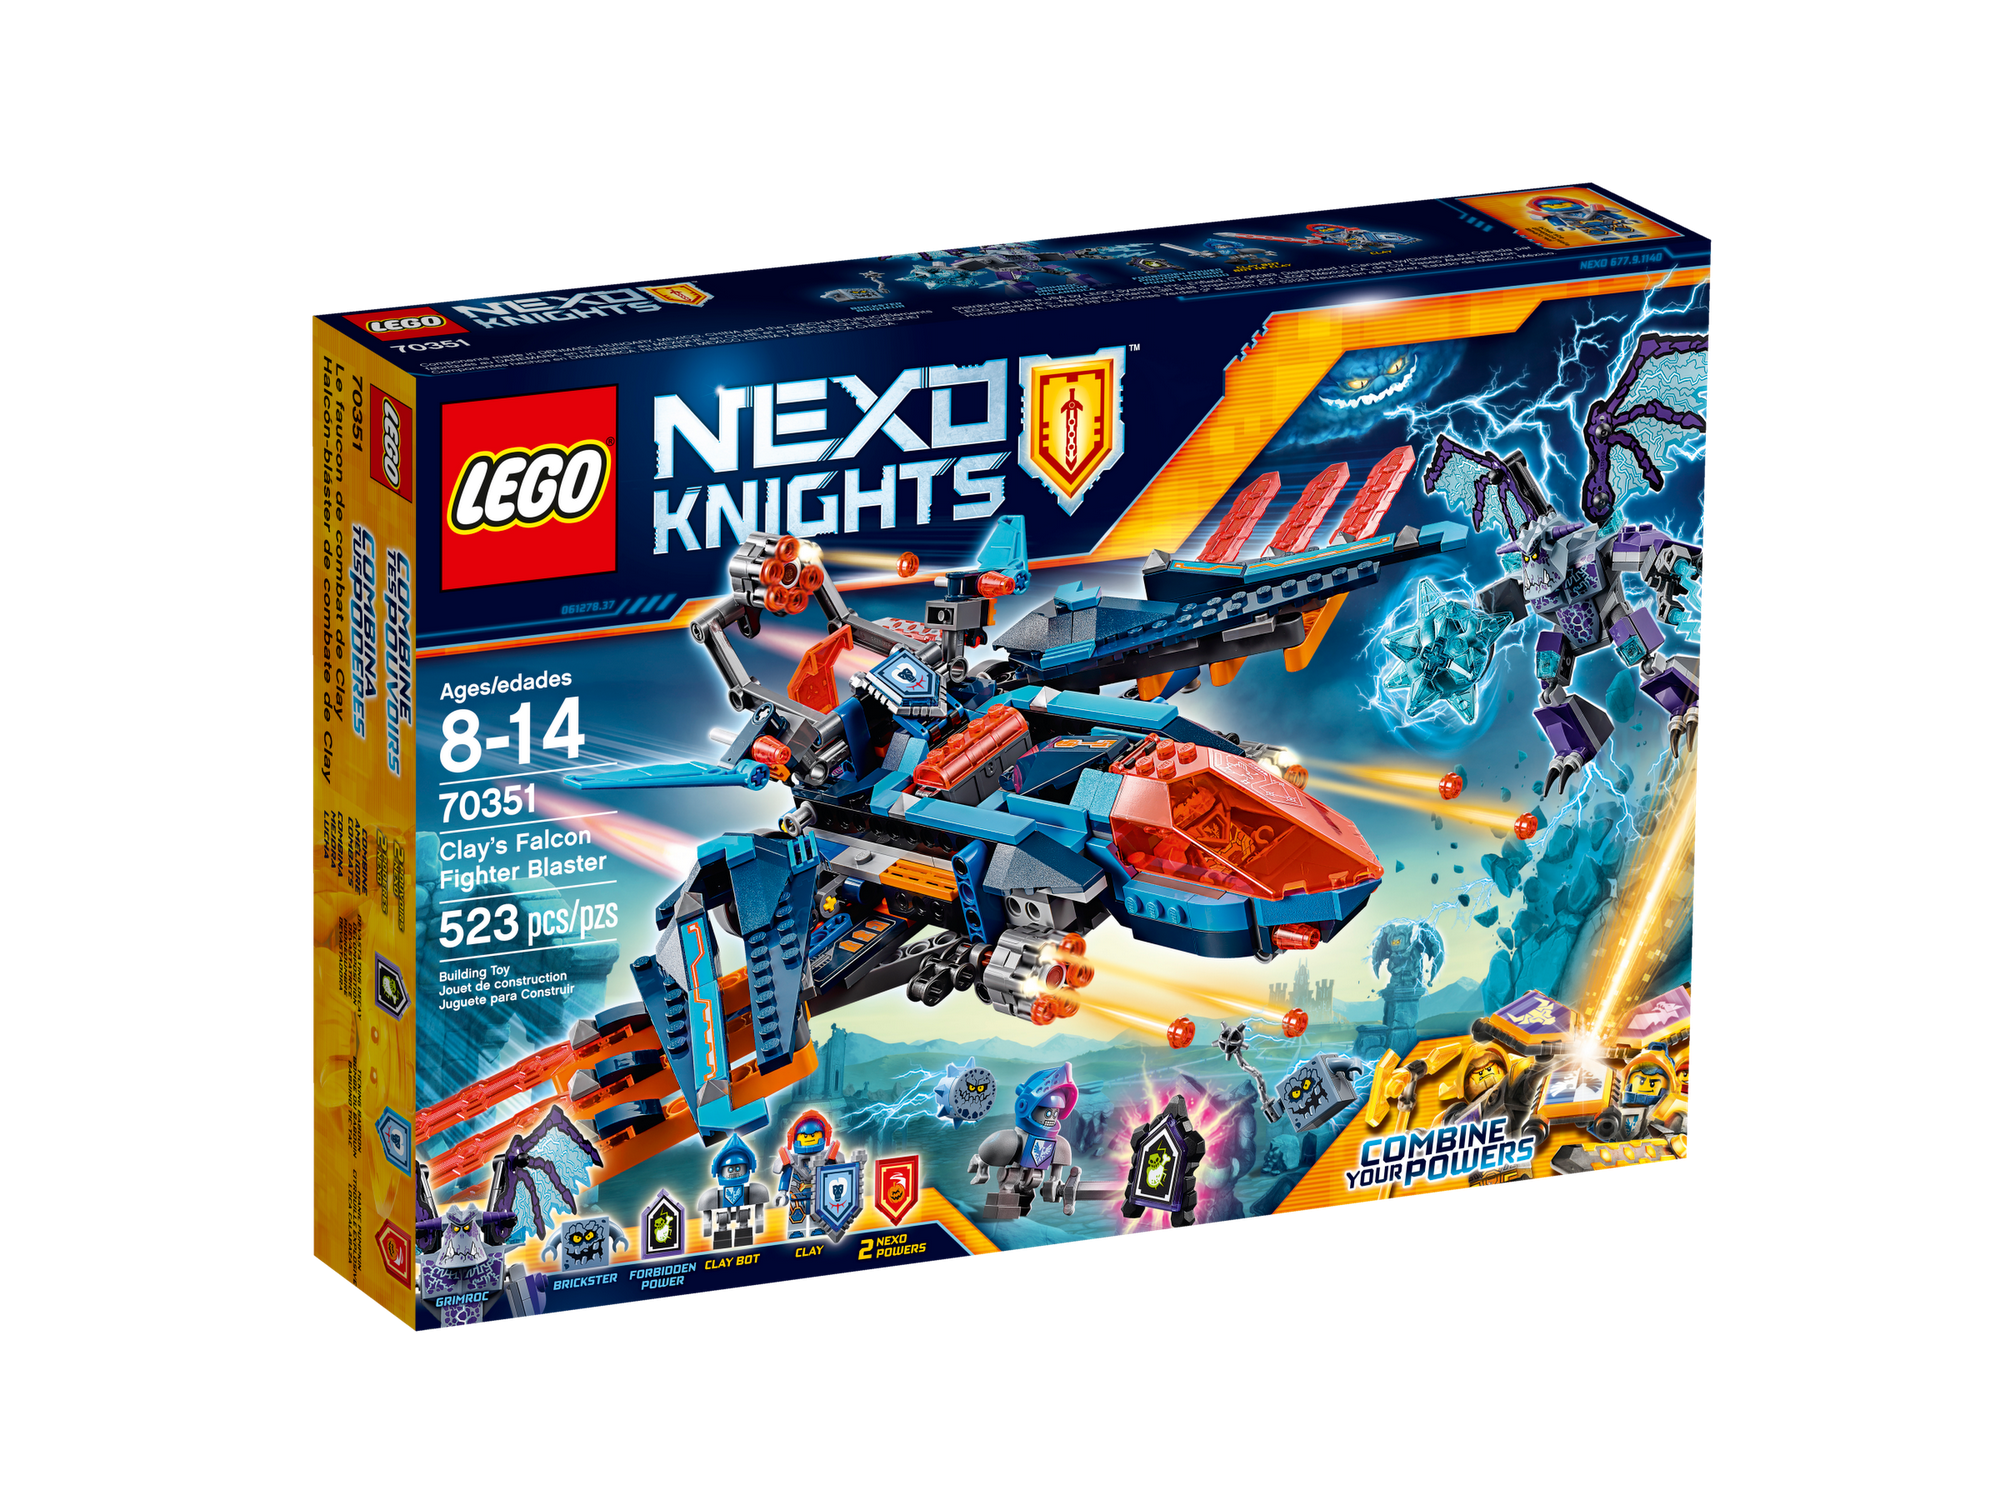 14030 539pcs Nexus Knights Series Clay\\s Falcon Fighter Blaster Lepin Building Block Compatible